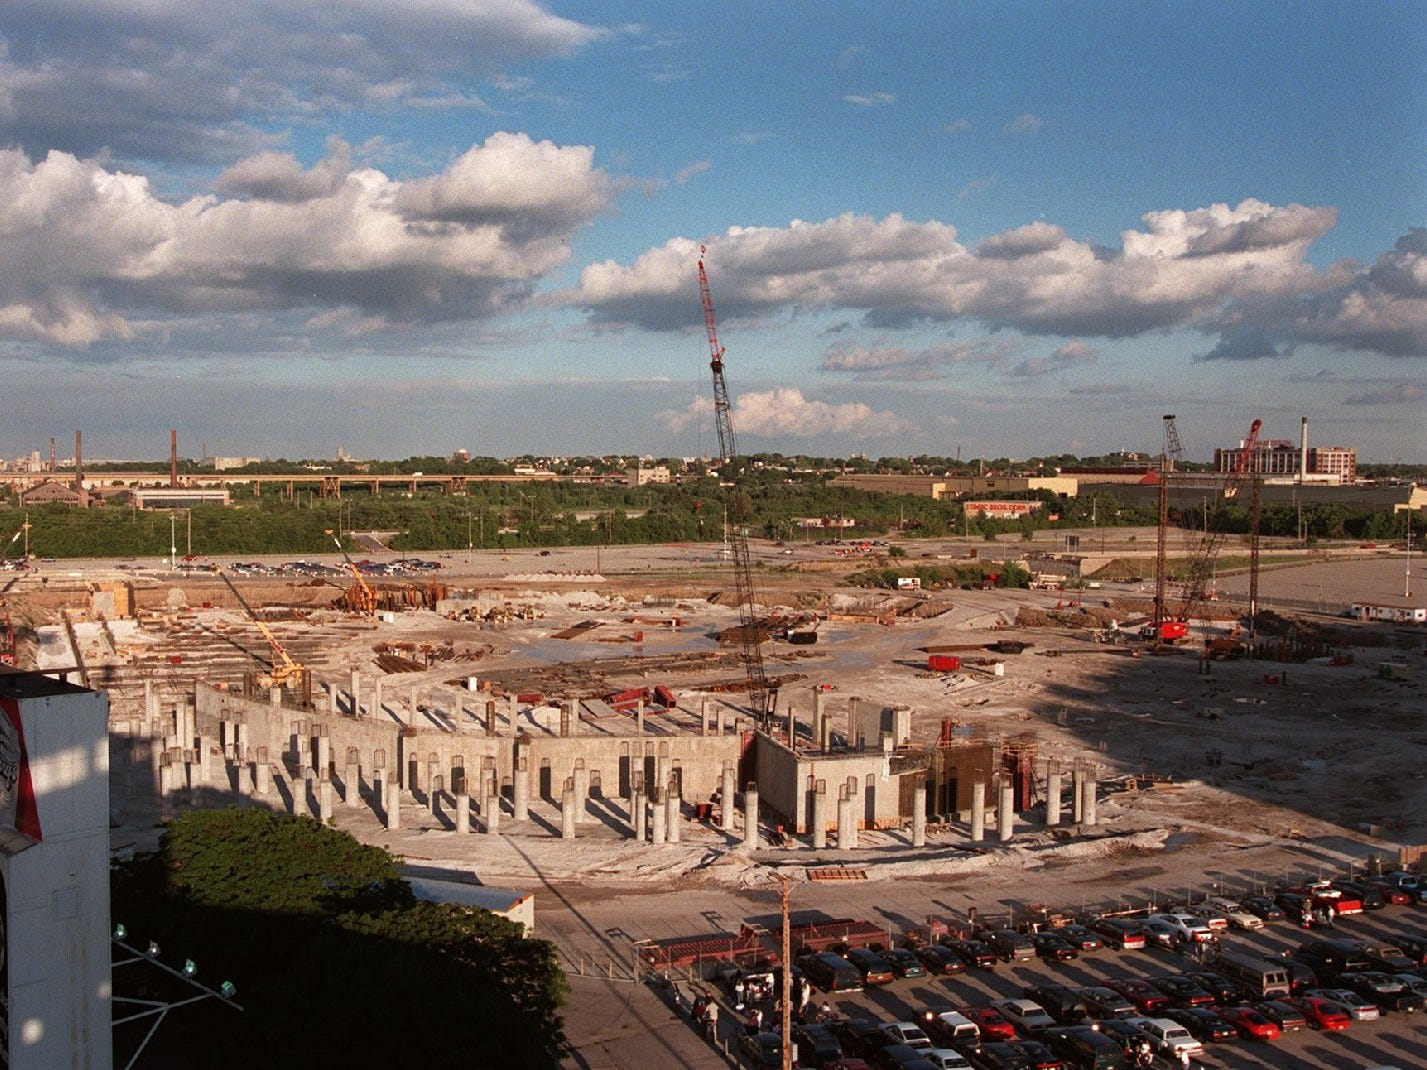 This is an update on the Miller Park construction as viewed on Aug. 21, 1997, in Milwaukee.